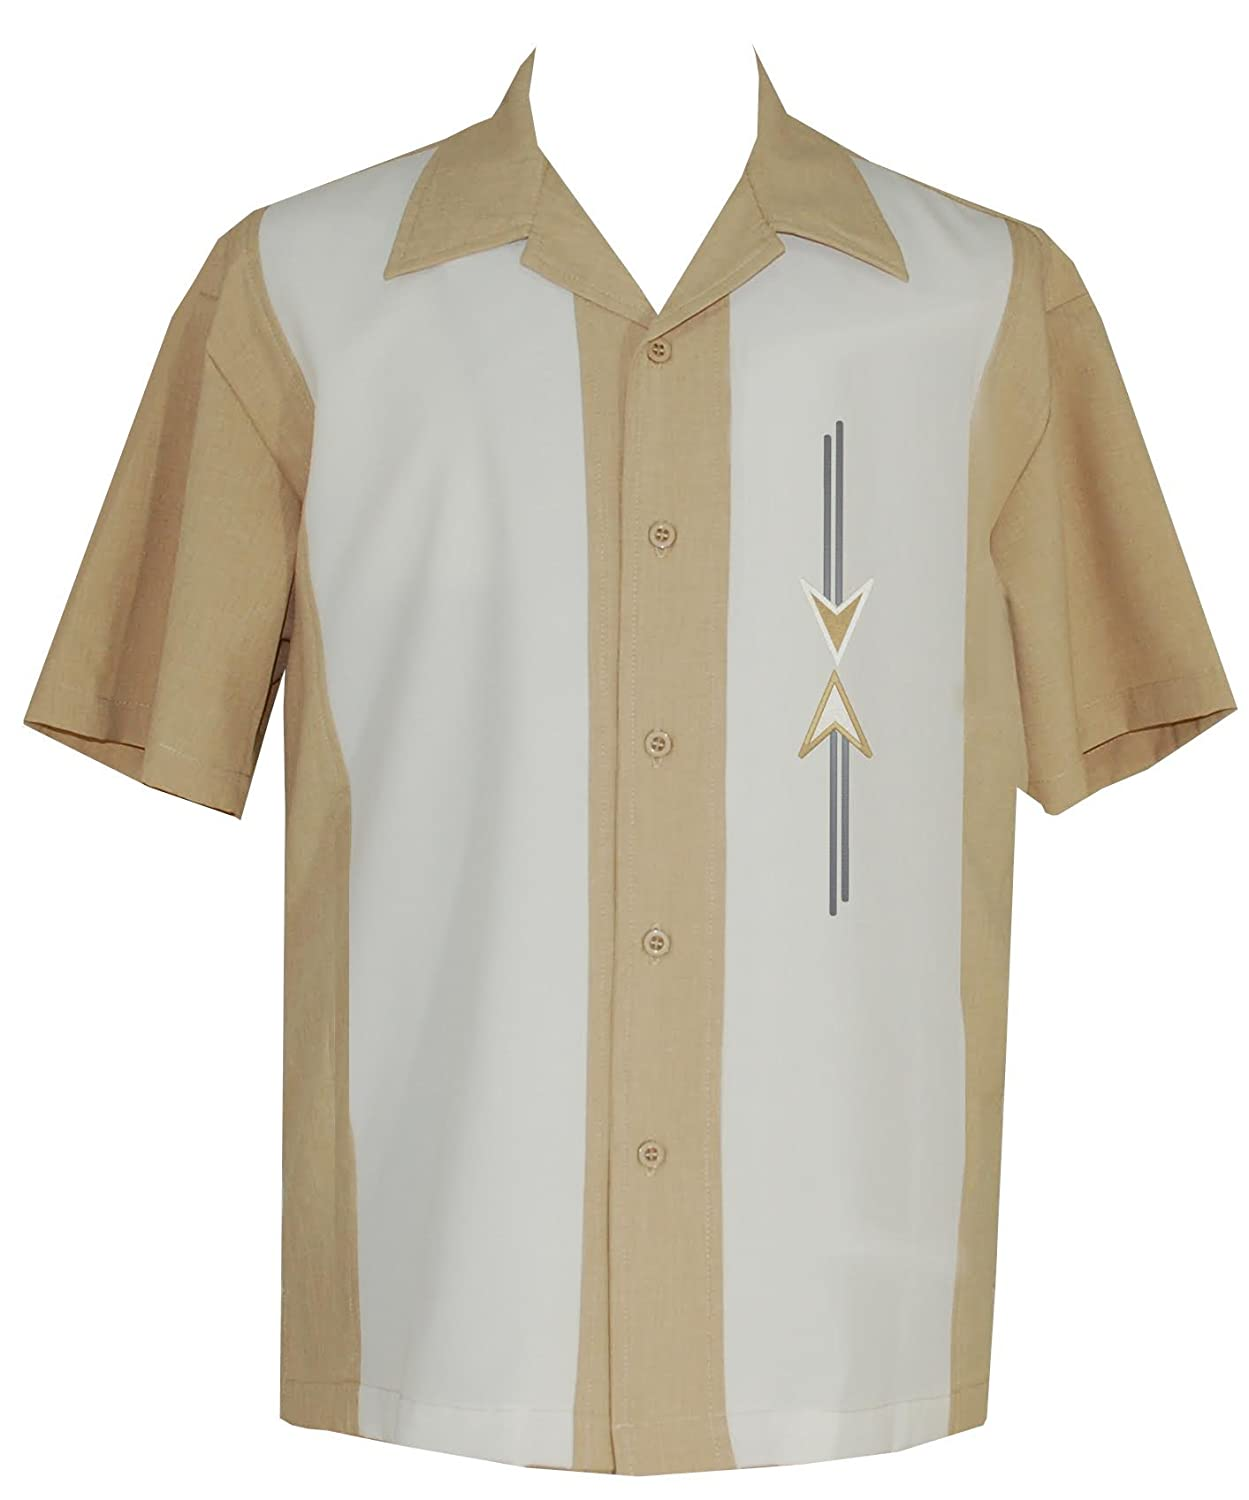 Retro Clothing for Men | Vintage Men's Fashion Lucky Paradise Mens Camp Shirt Vintage Cuban Style Bowling Shirt ~ Tom Collins ~ Guayabera Dress Shirt Style $54.95 AT vintagedancer.com